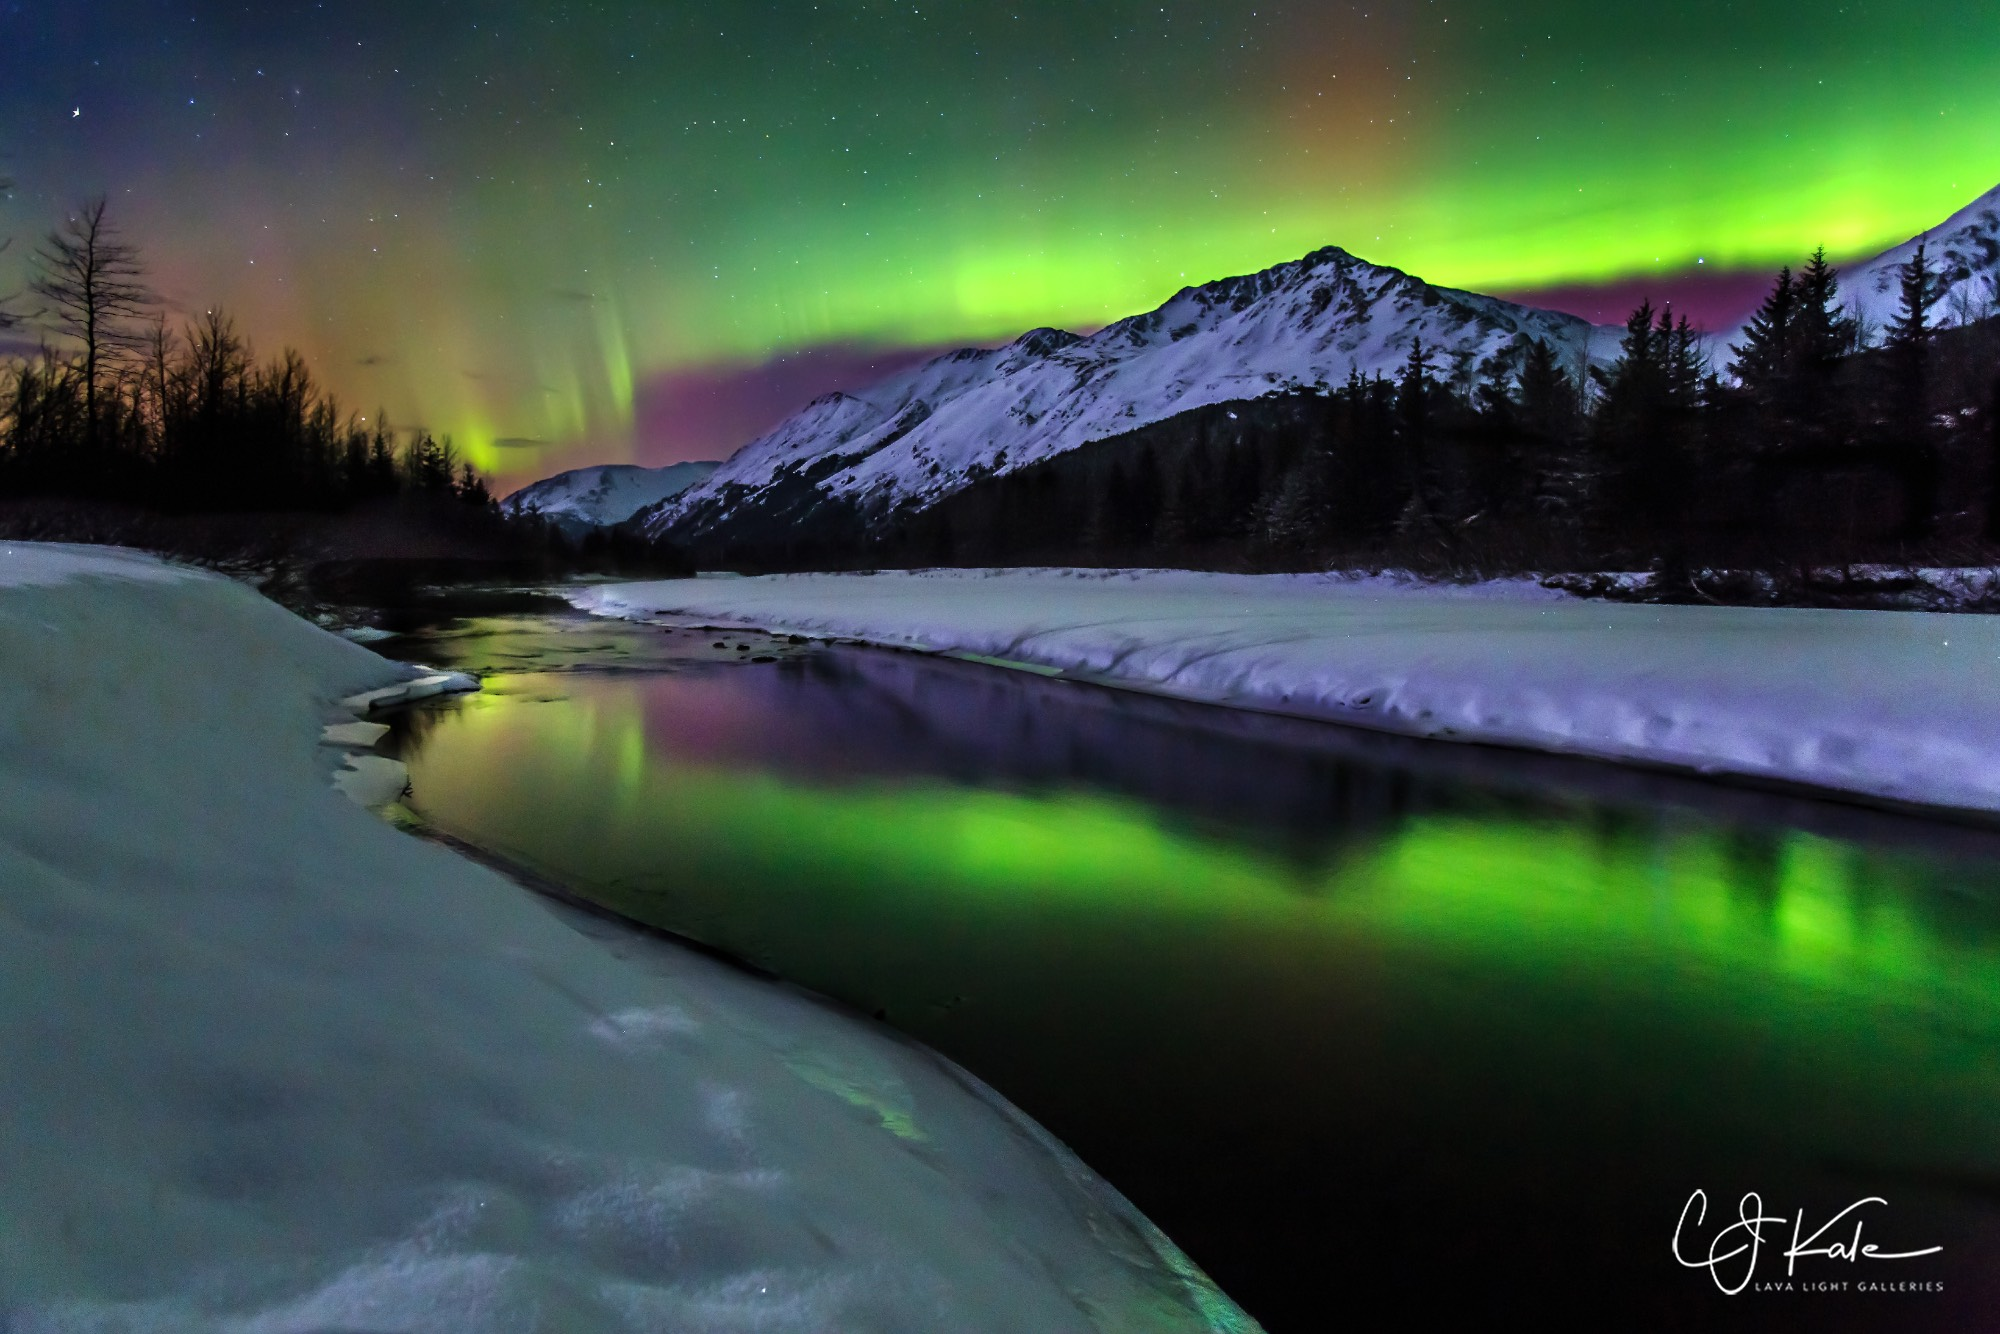 Aurora, Aurora Borealis, Northern Lights, photo